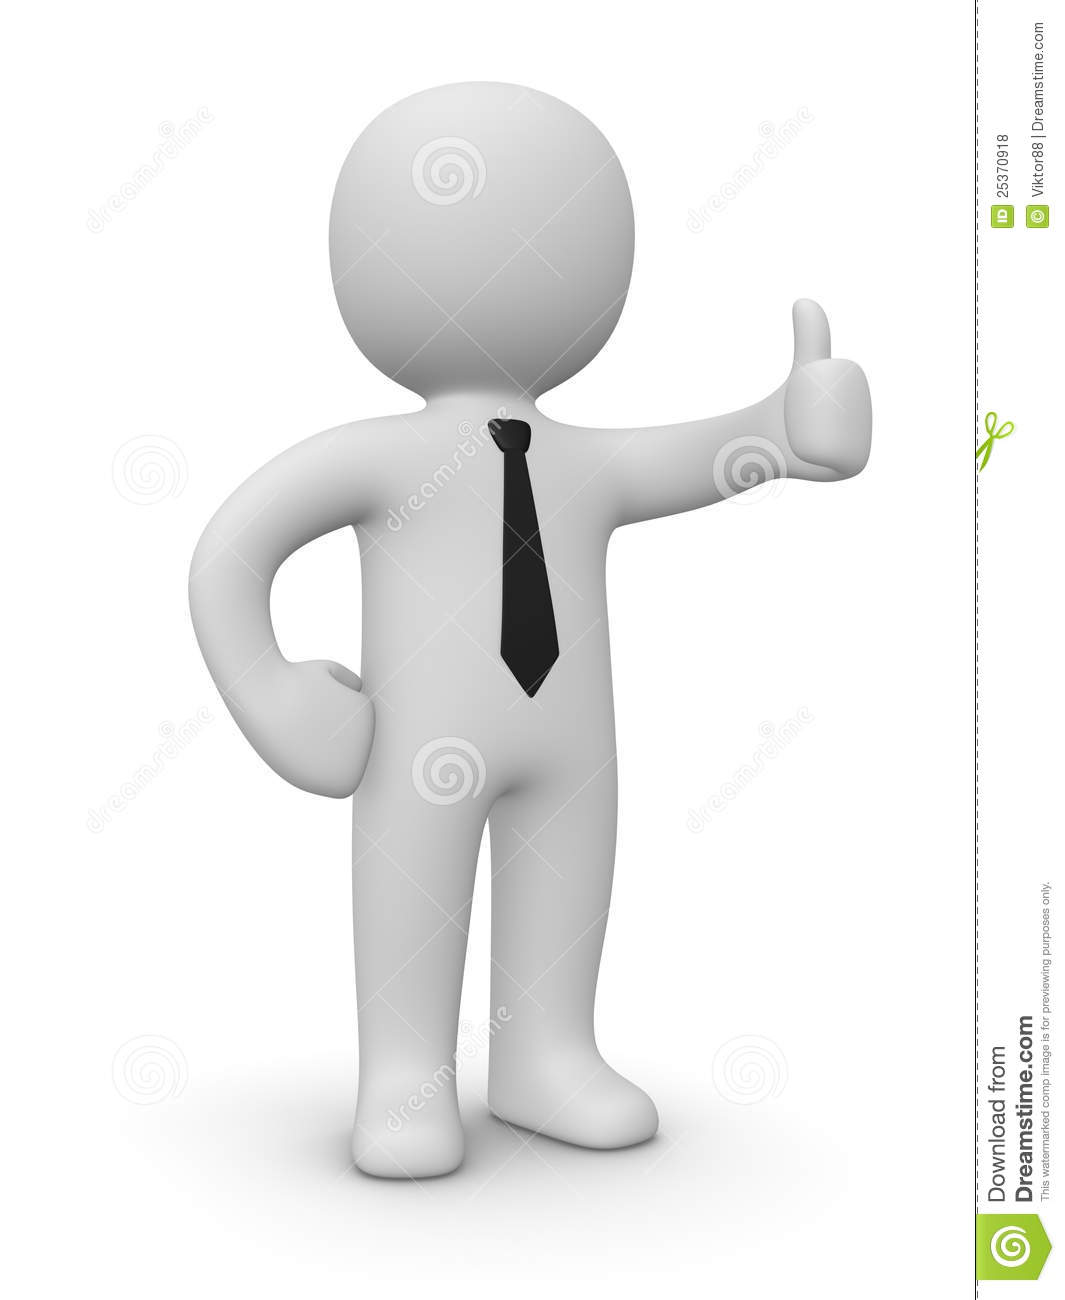 Confident businessman showing thumbs up sign royalty free stock photos